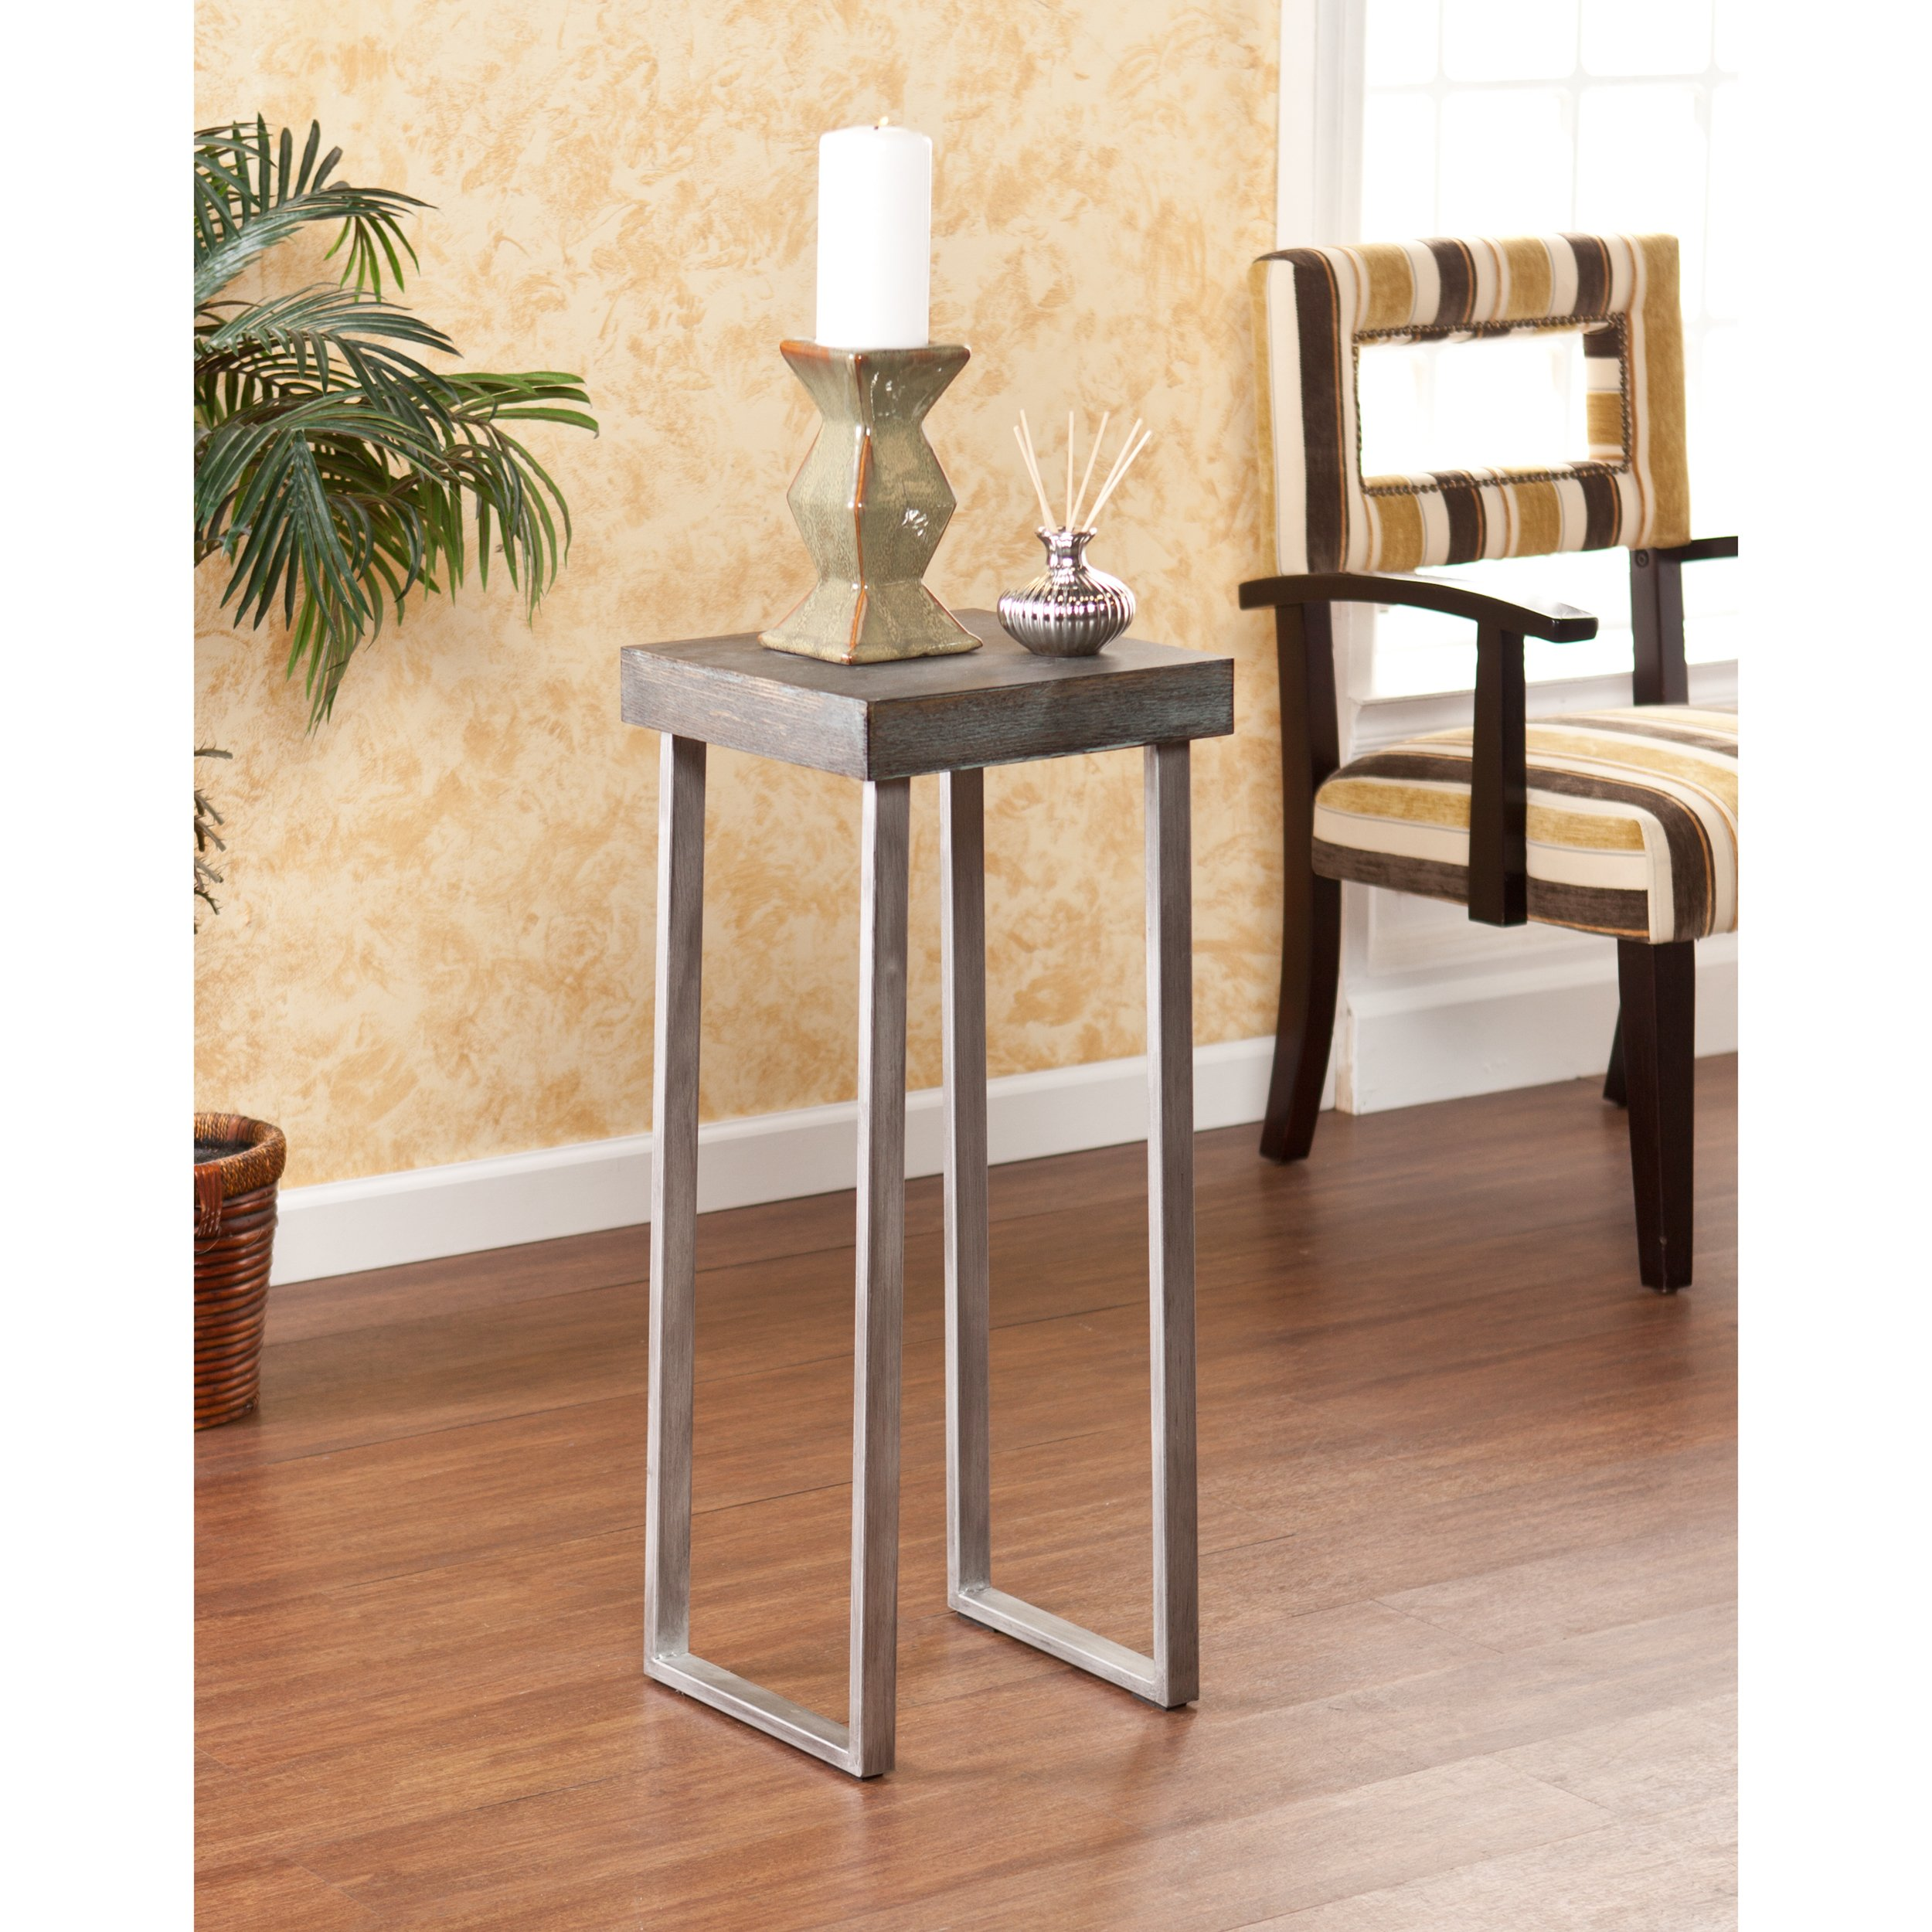 harper blvd lumberton pedestal accent table free shipping upton home round wood and metal patio umbrella oriental ceramic lamps brushed nickel side bronze end tables wedding